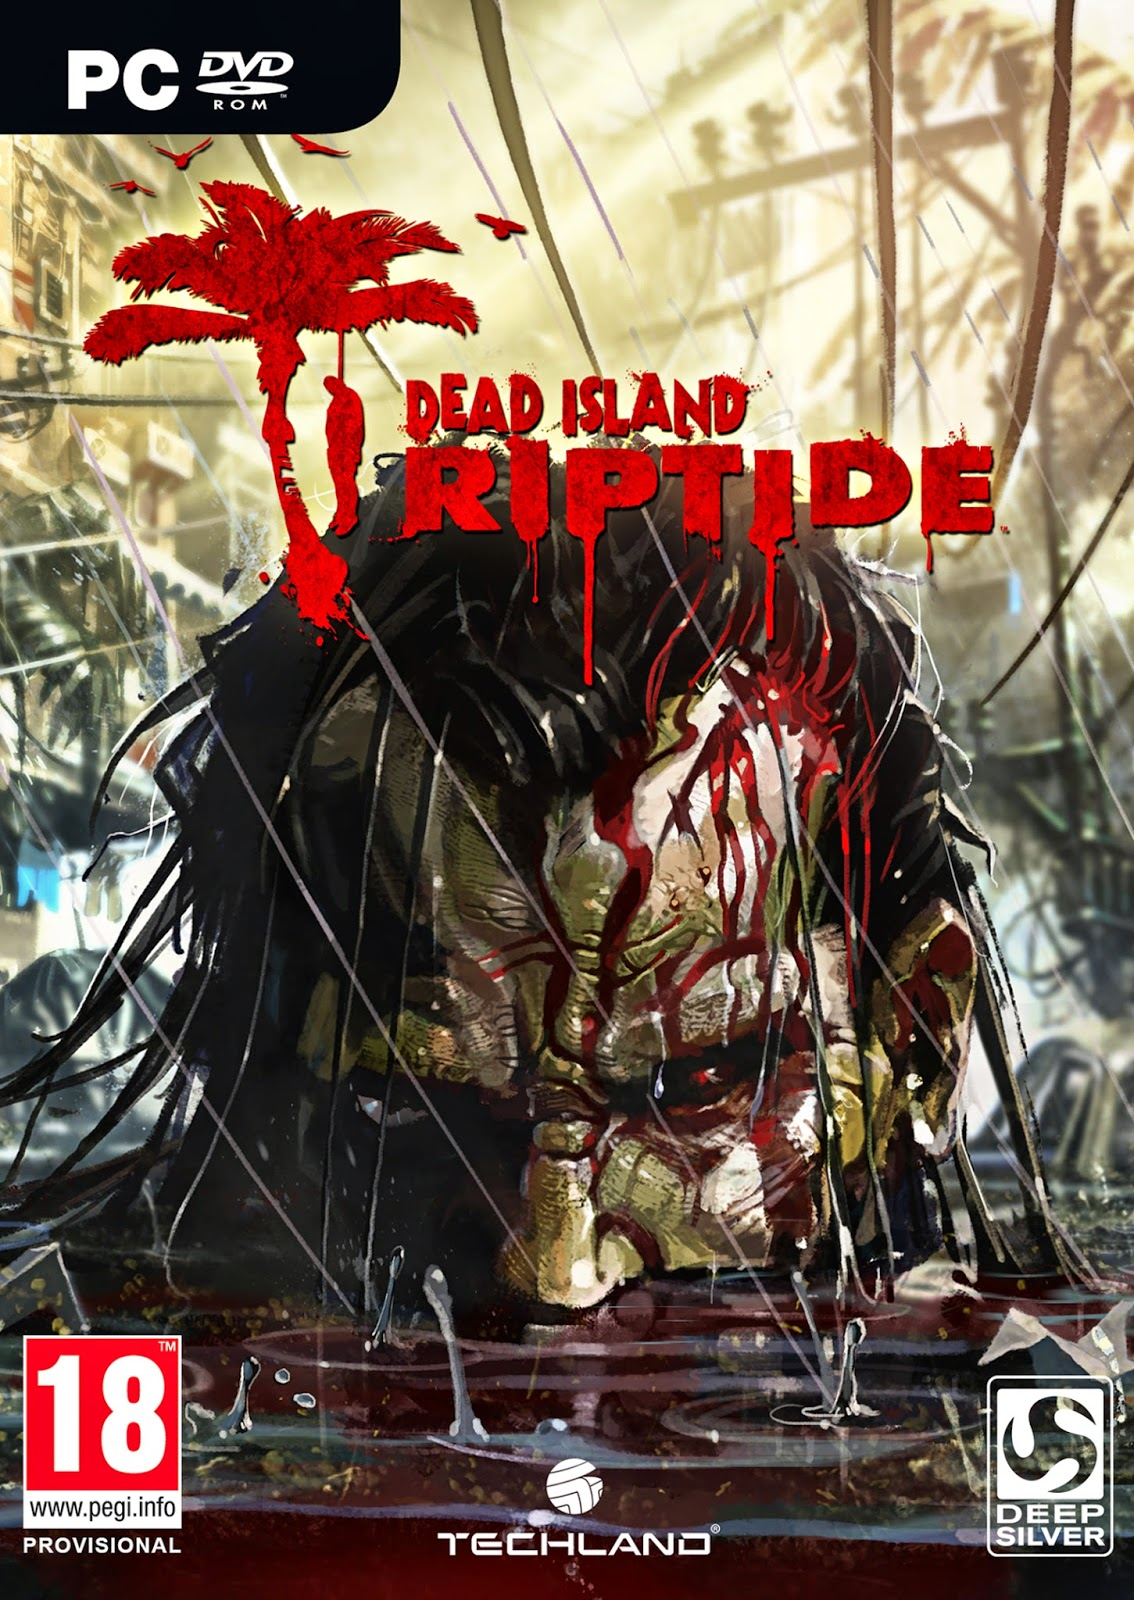 Dead-Island-Riptide-PC-Torrent